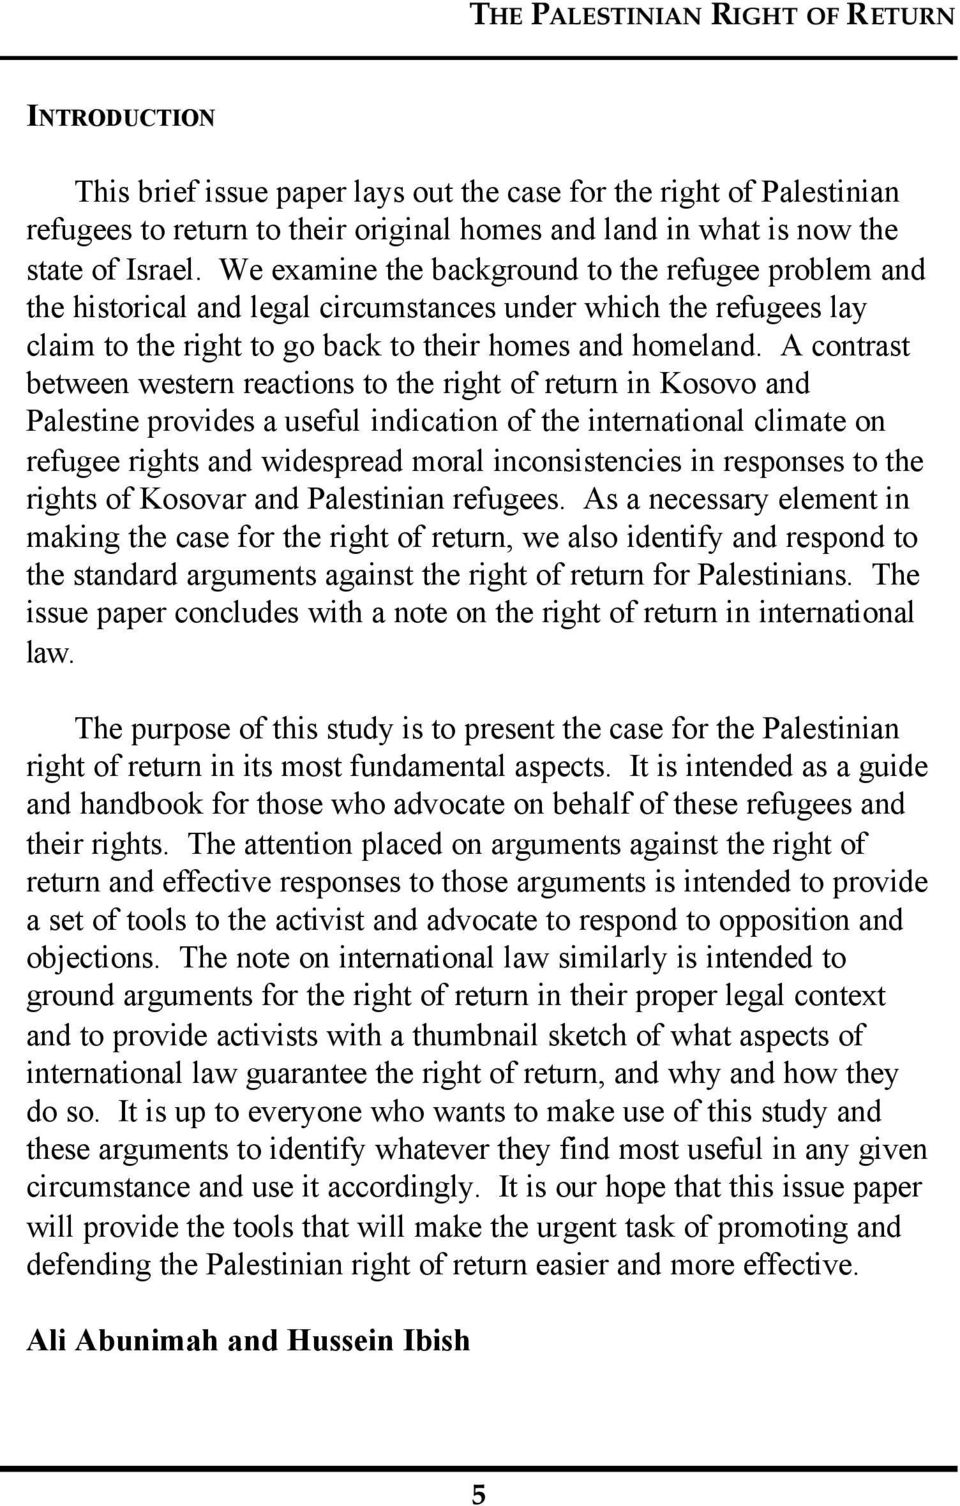 A contrast between western reactions to the right of return in Kosovo and Palestine provides a useful indication of the international climate on refugee rights and widespread moral inconsistencies in